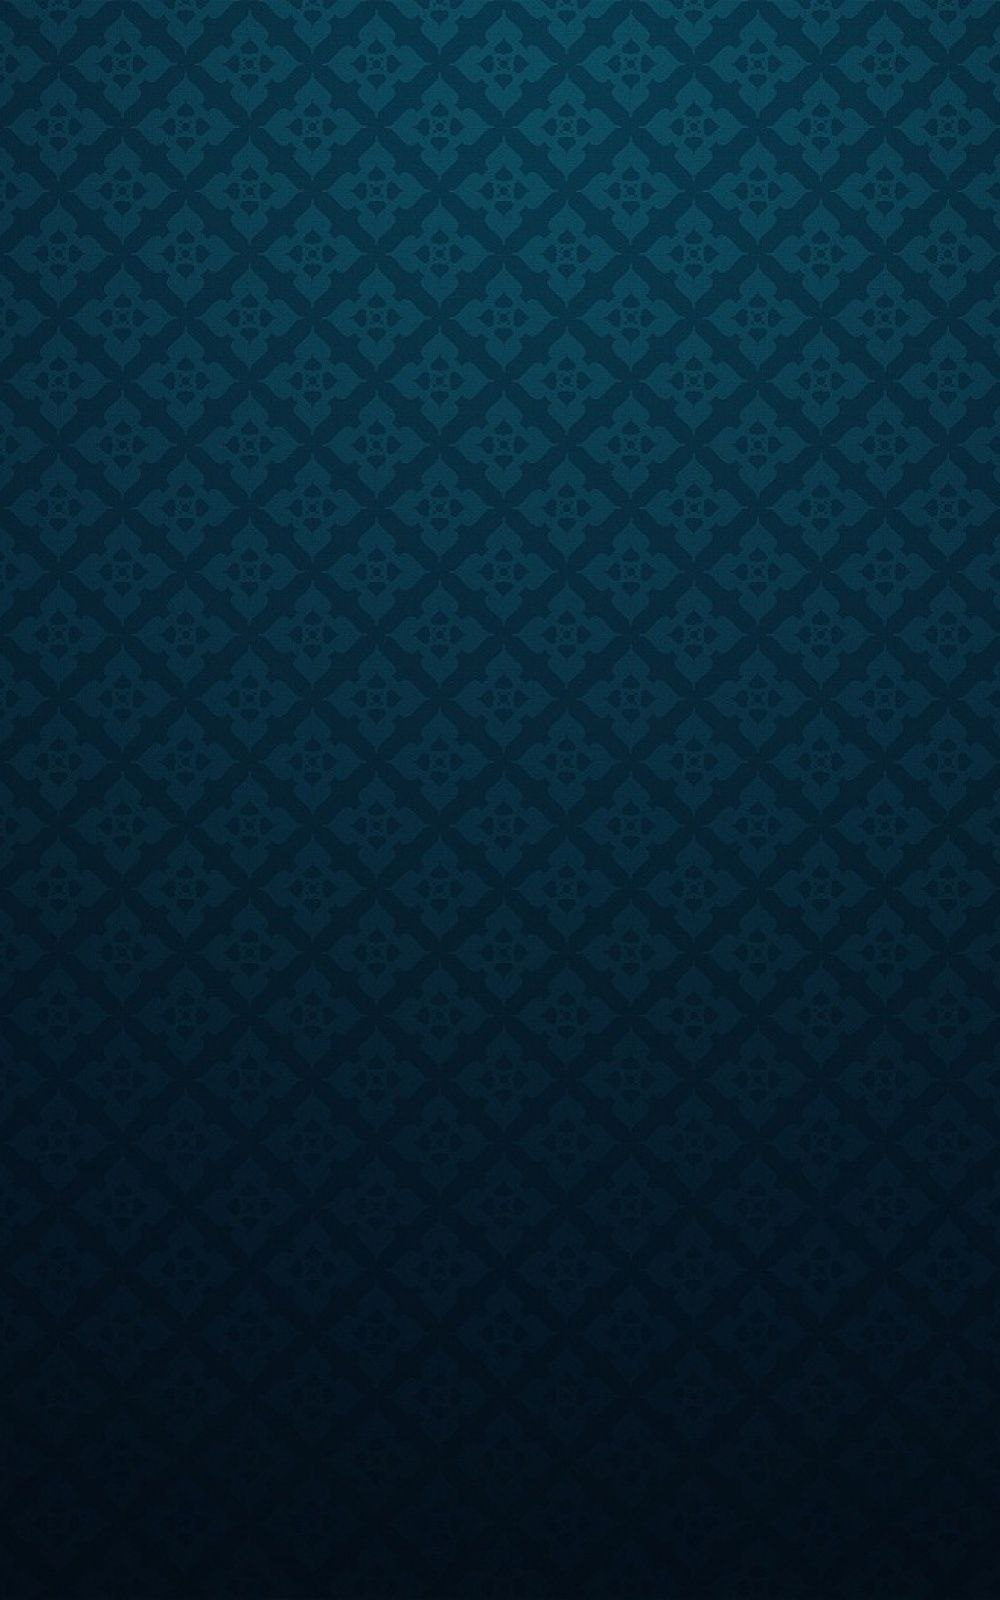 Blue navy pattern android wallpaper free download for Navy blue wallpaper